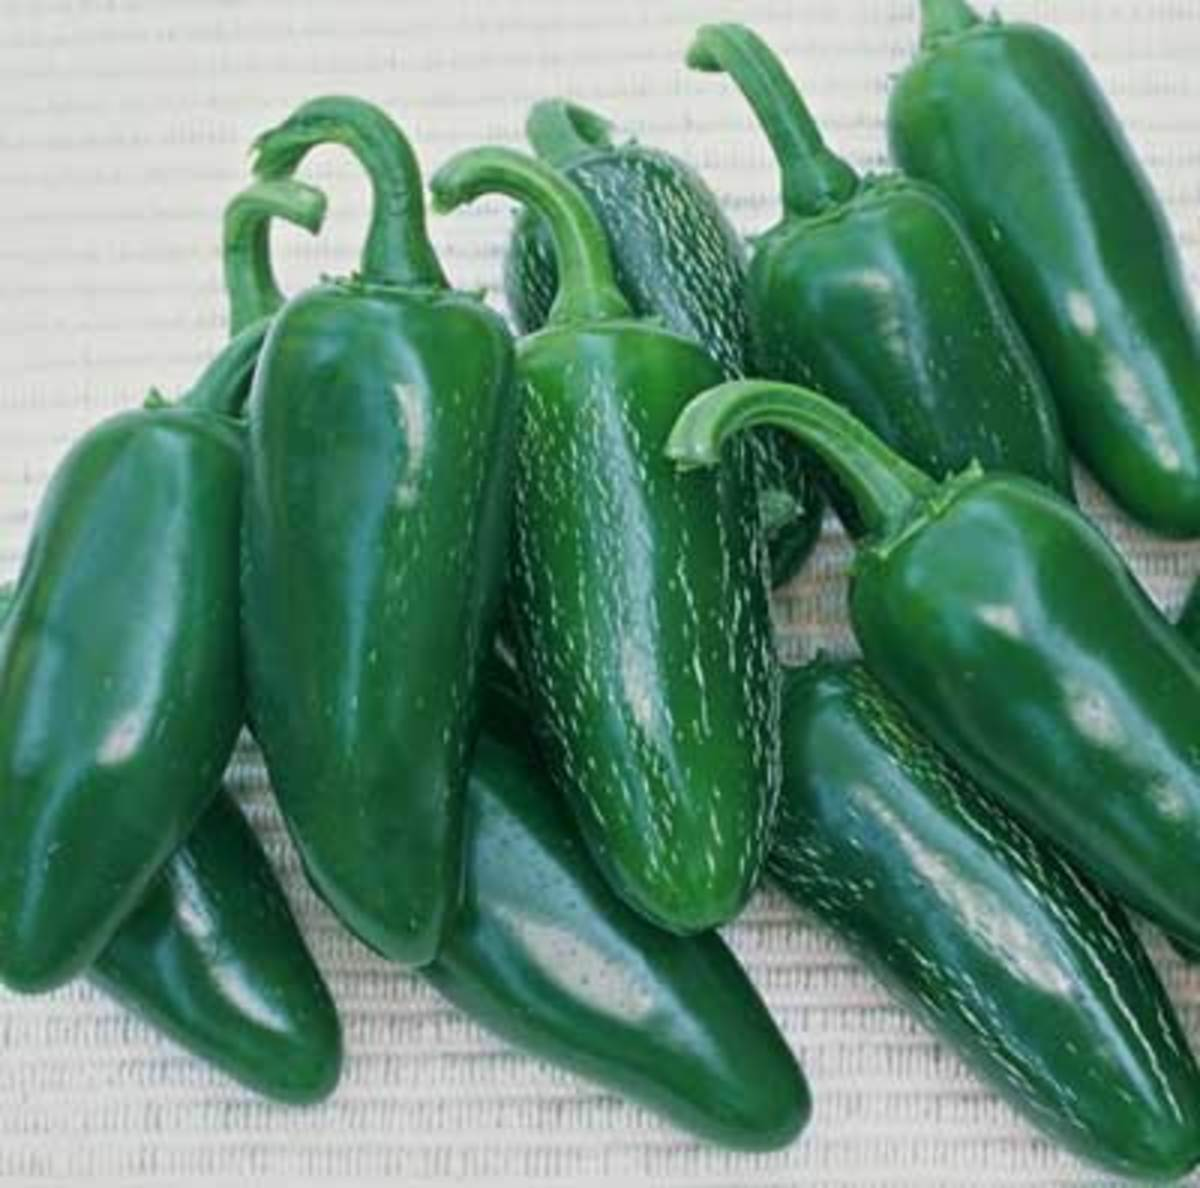 Jalapeno, fiery, thick-walled peppers grow 3 inches long and 1 1/2 inches wide, with rounded tips. Dark green at first, then turning red. Good for fresh use or pickling; famous for nachos and other Tex-Mex dishes.